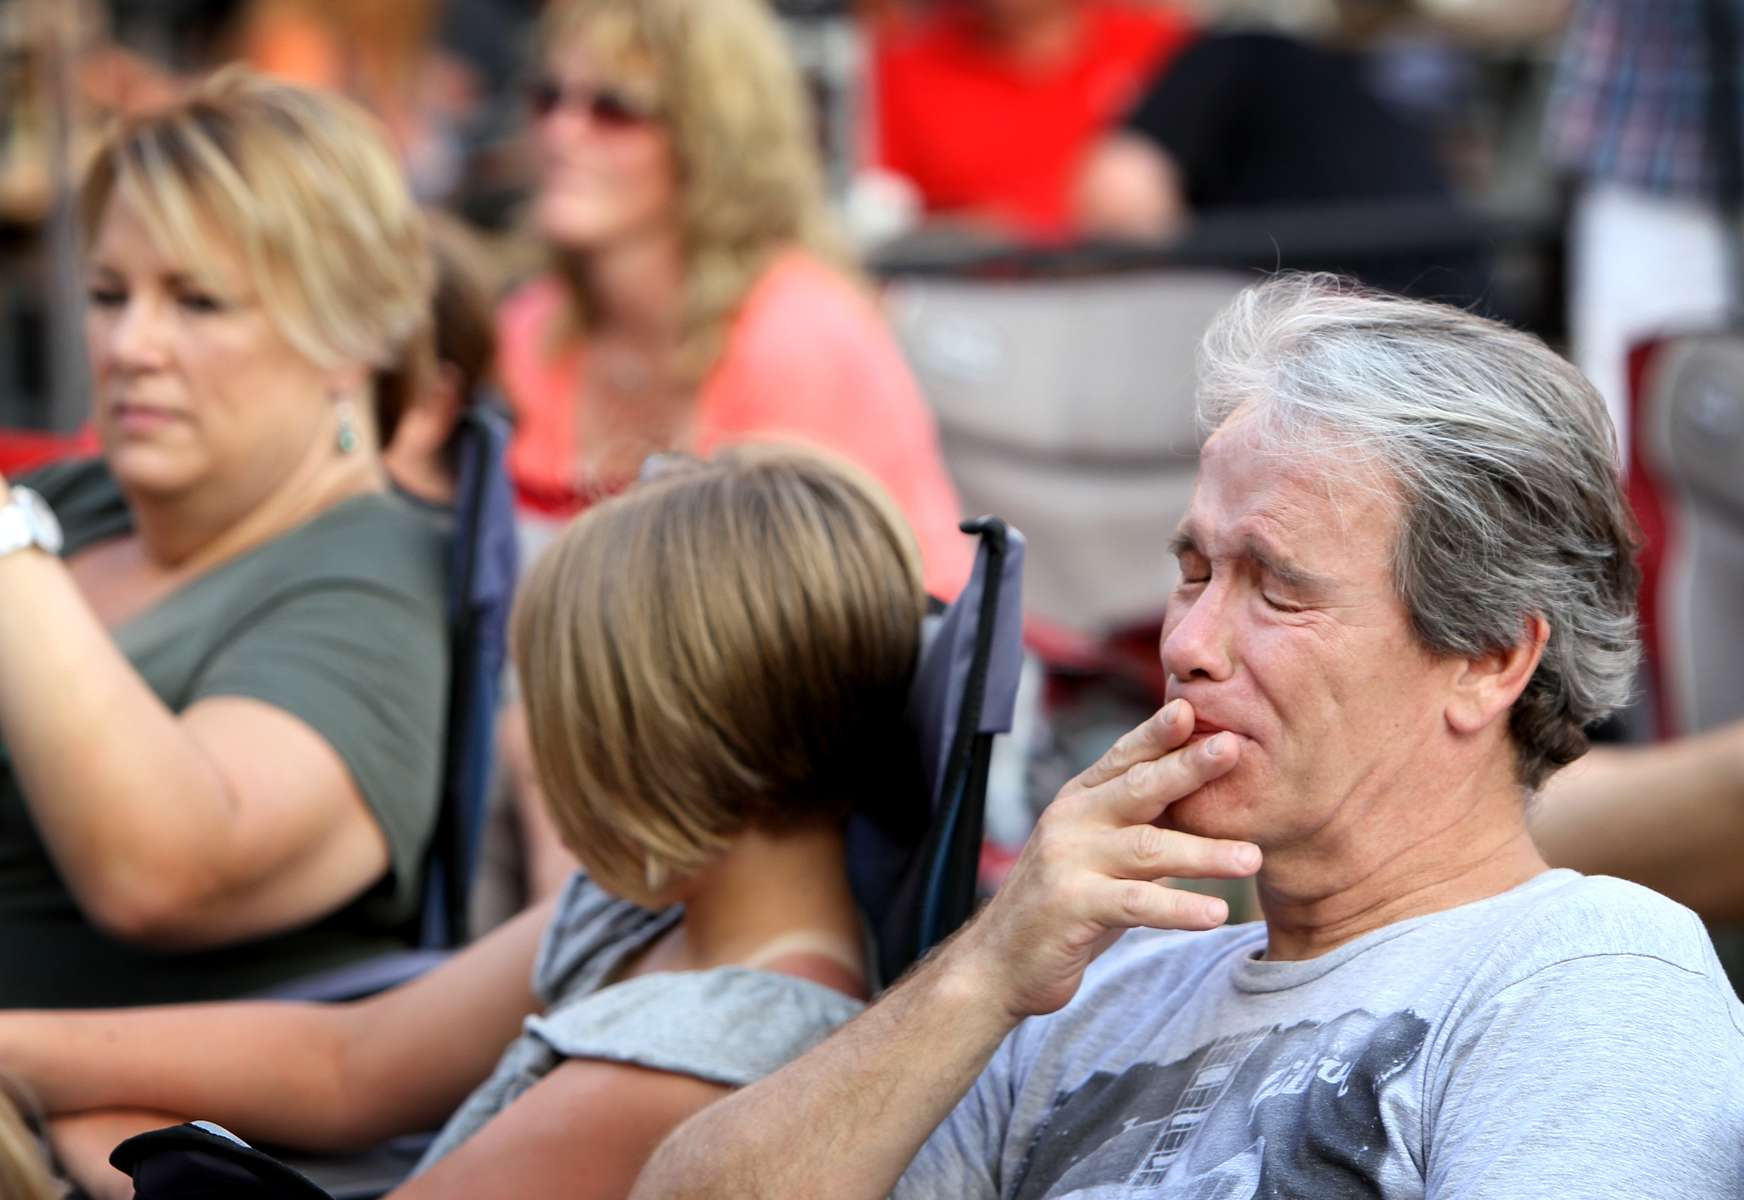 Darryl Vennard (right) holds back tears as he listens to his son Ben Vennard playing {quote}While My Guitar Gently Weeps{quote} in a tribute Cam Vennard, Darryl's son and Ben's brother, during memorial concert in Cam's honor on July 12, 2012 in Kirkwood.  Cam, 14, was walking along the tracks east of downtown Kirkwood when he was struck and killed by westbound train in May of 2012.Photo By David Carson, dcarson@post-dispatch.com